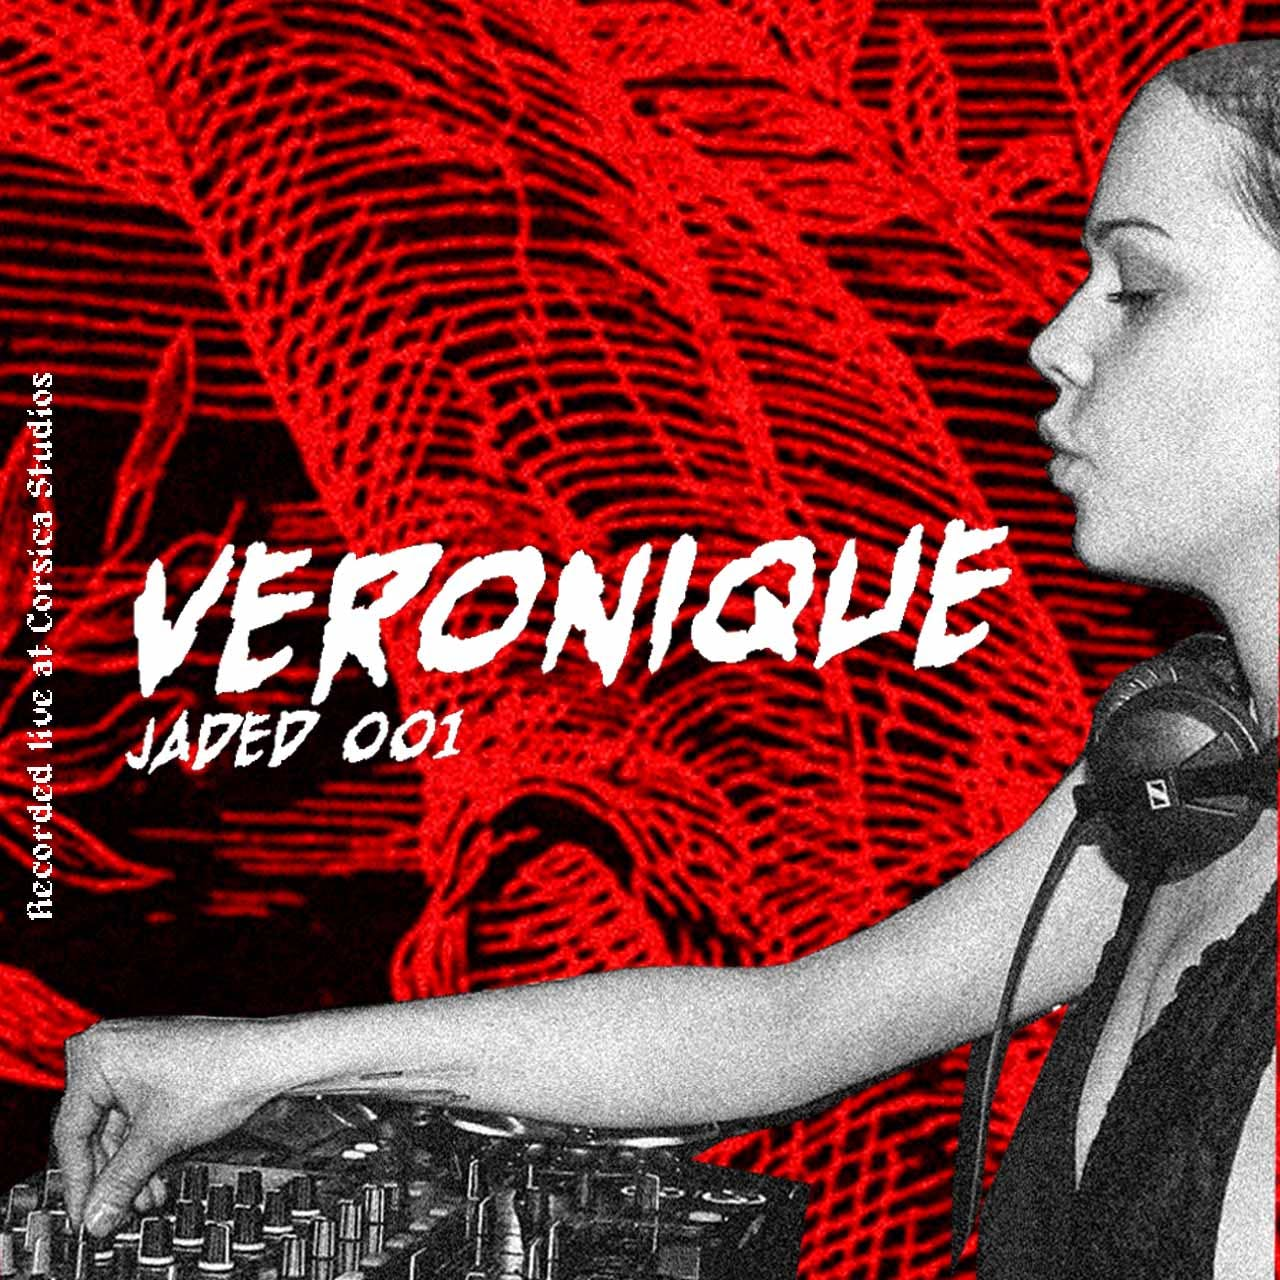 Jaded: Disruptors 001 – Veronique